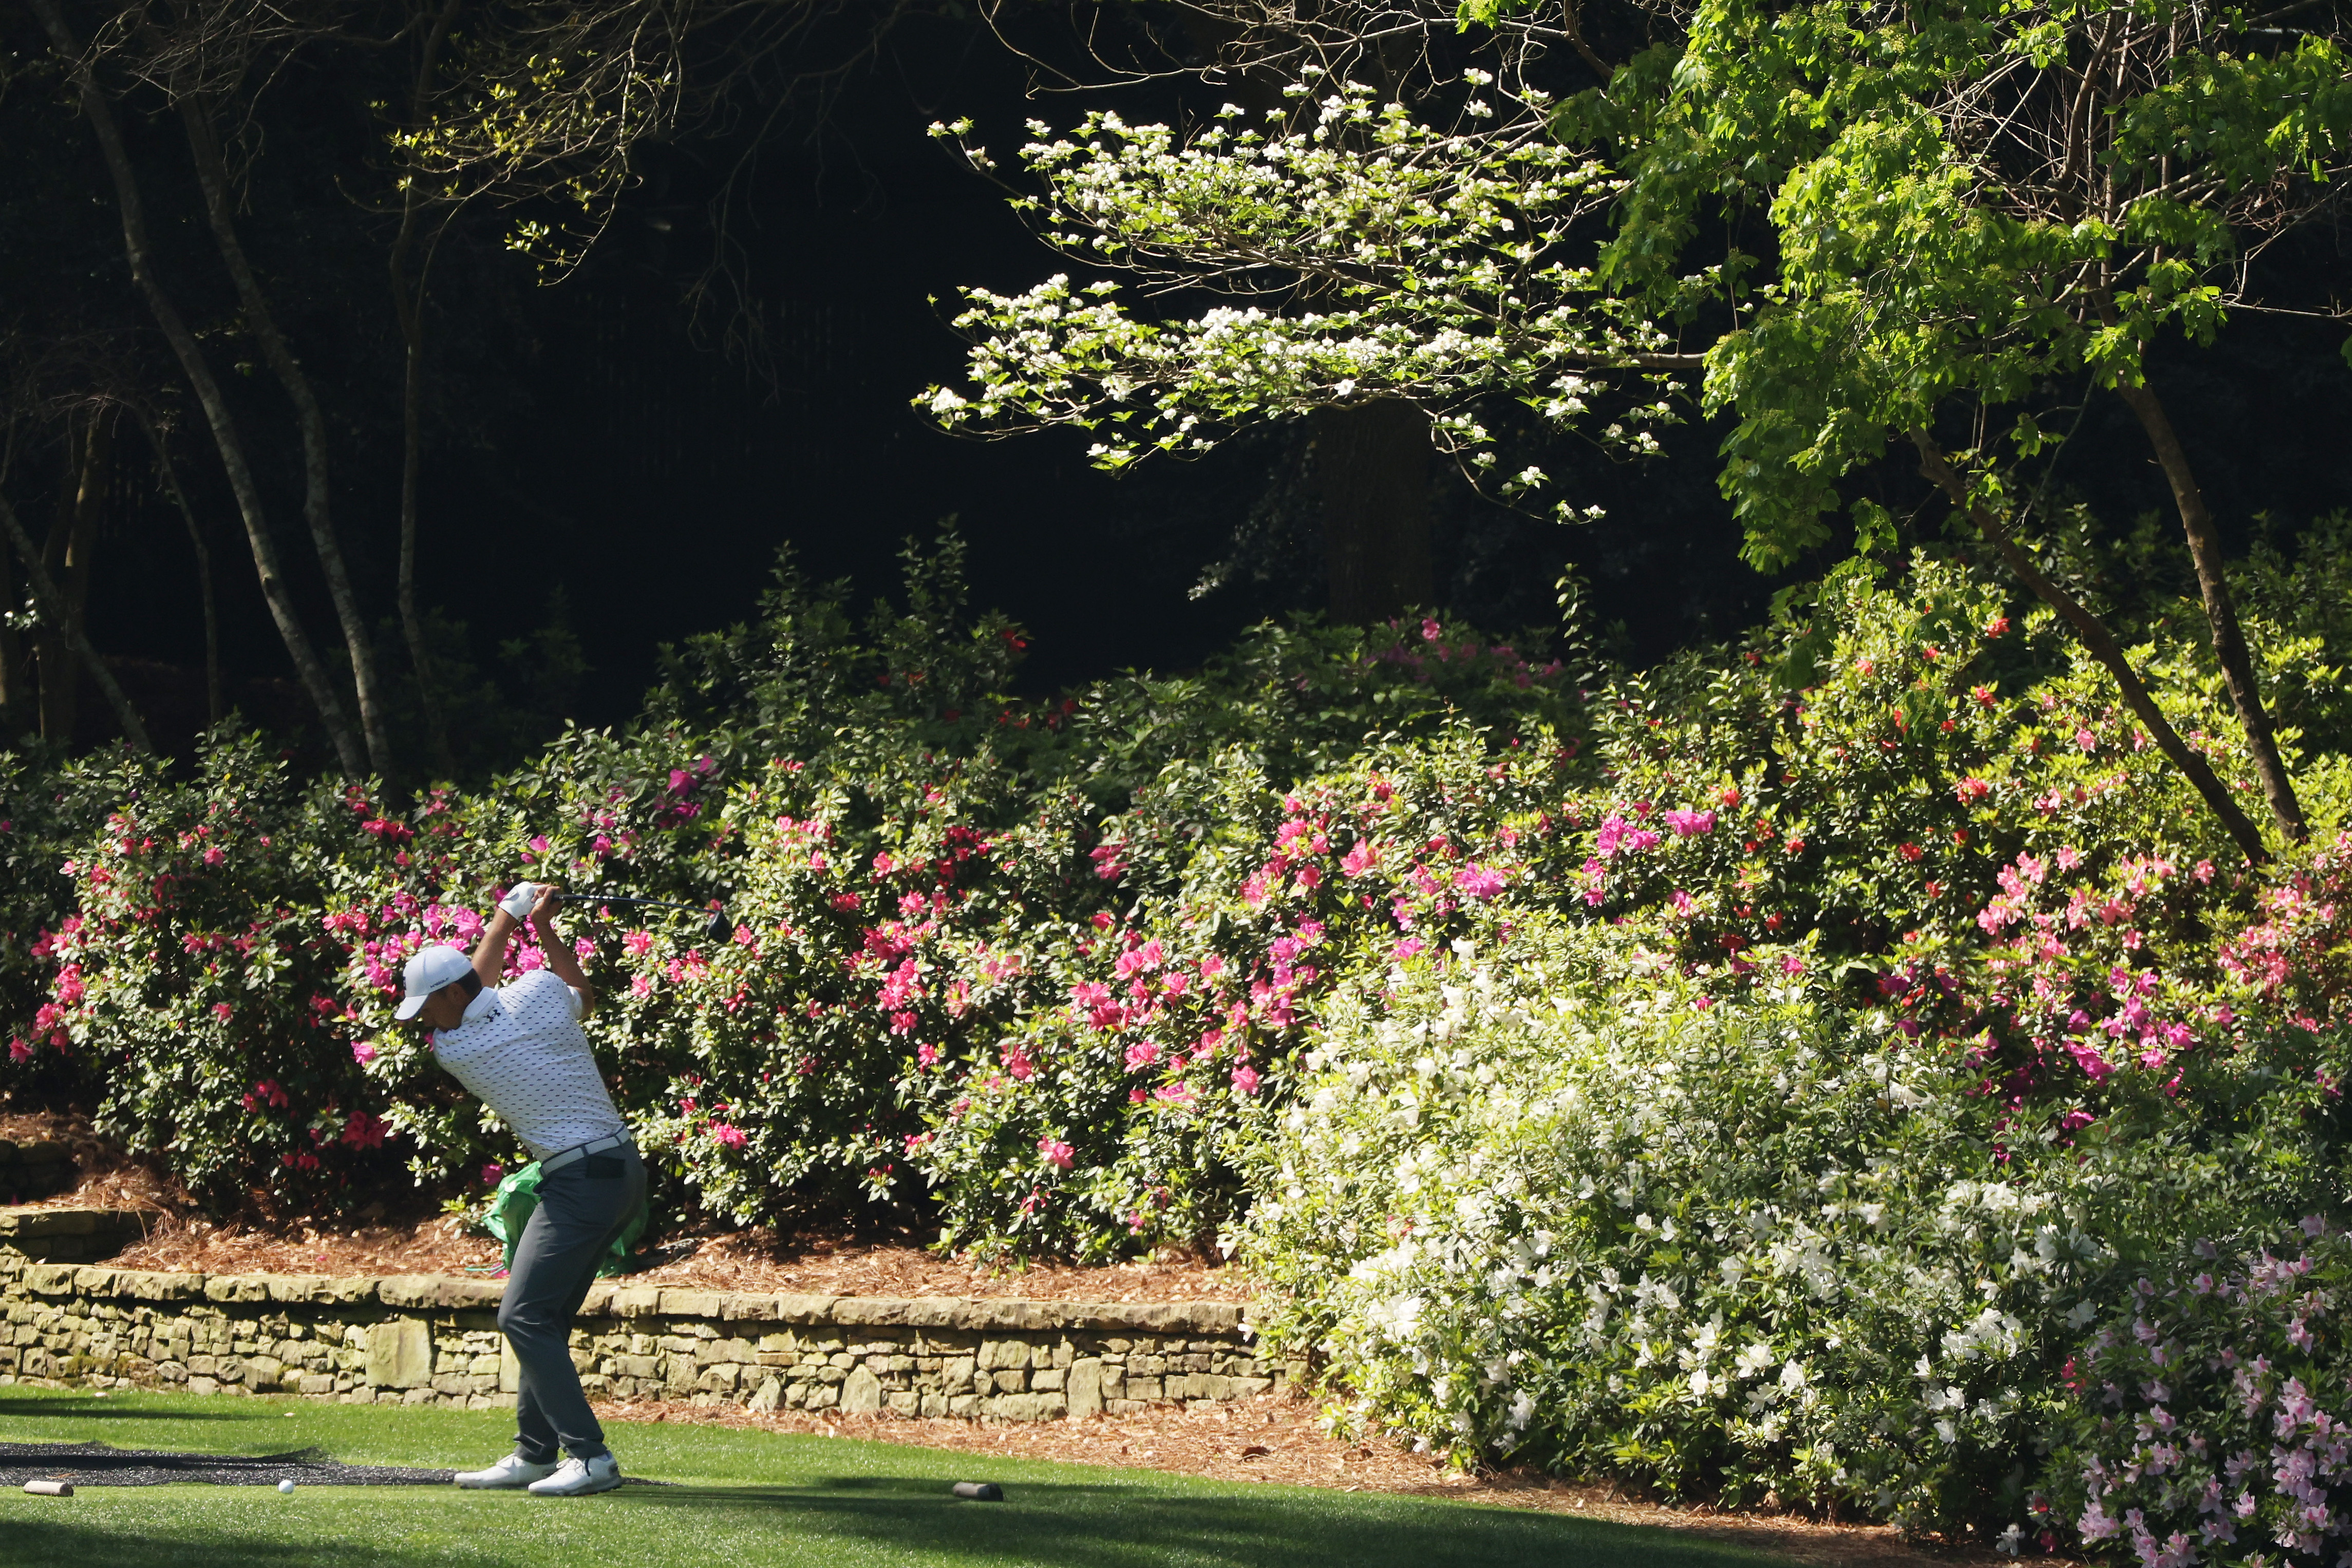 Jordan Spieth of the United States plays his shot from the 13th tee during a practice round prior to the Masters at Augusta National Golf Club on April 06, 2021 in Augusta, Georgia.